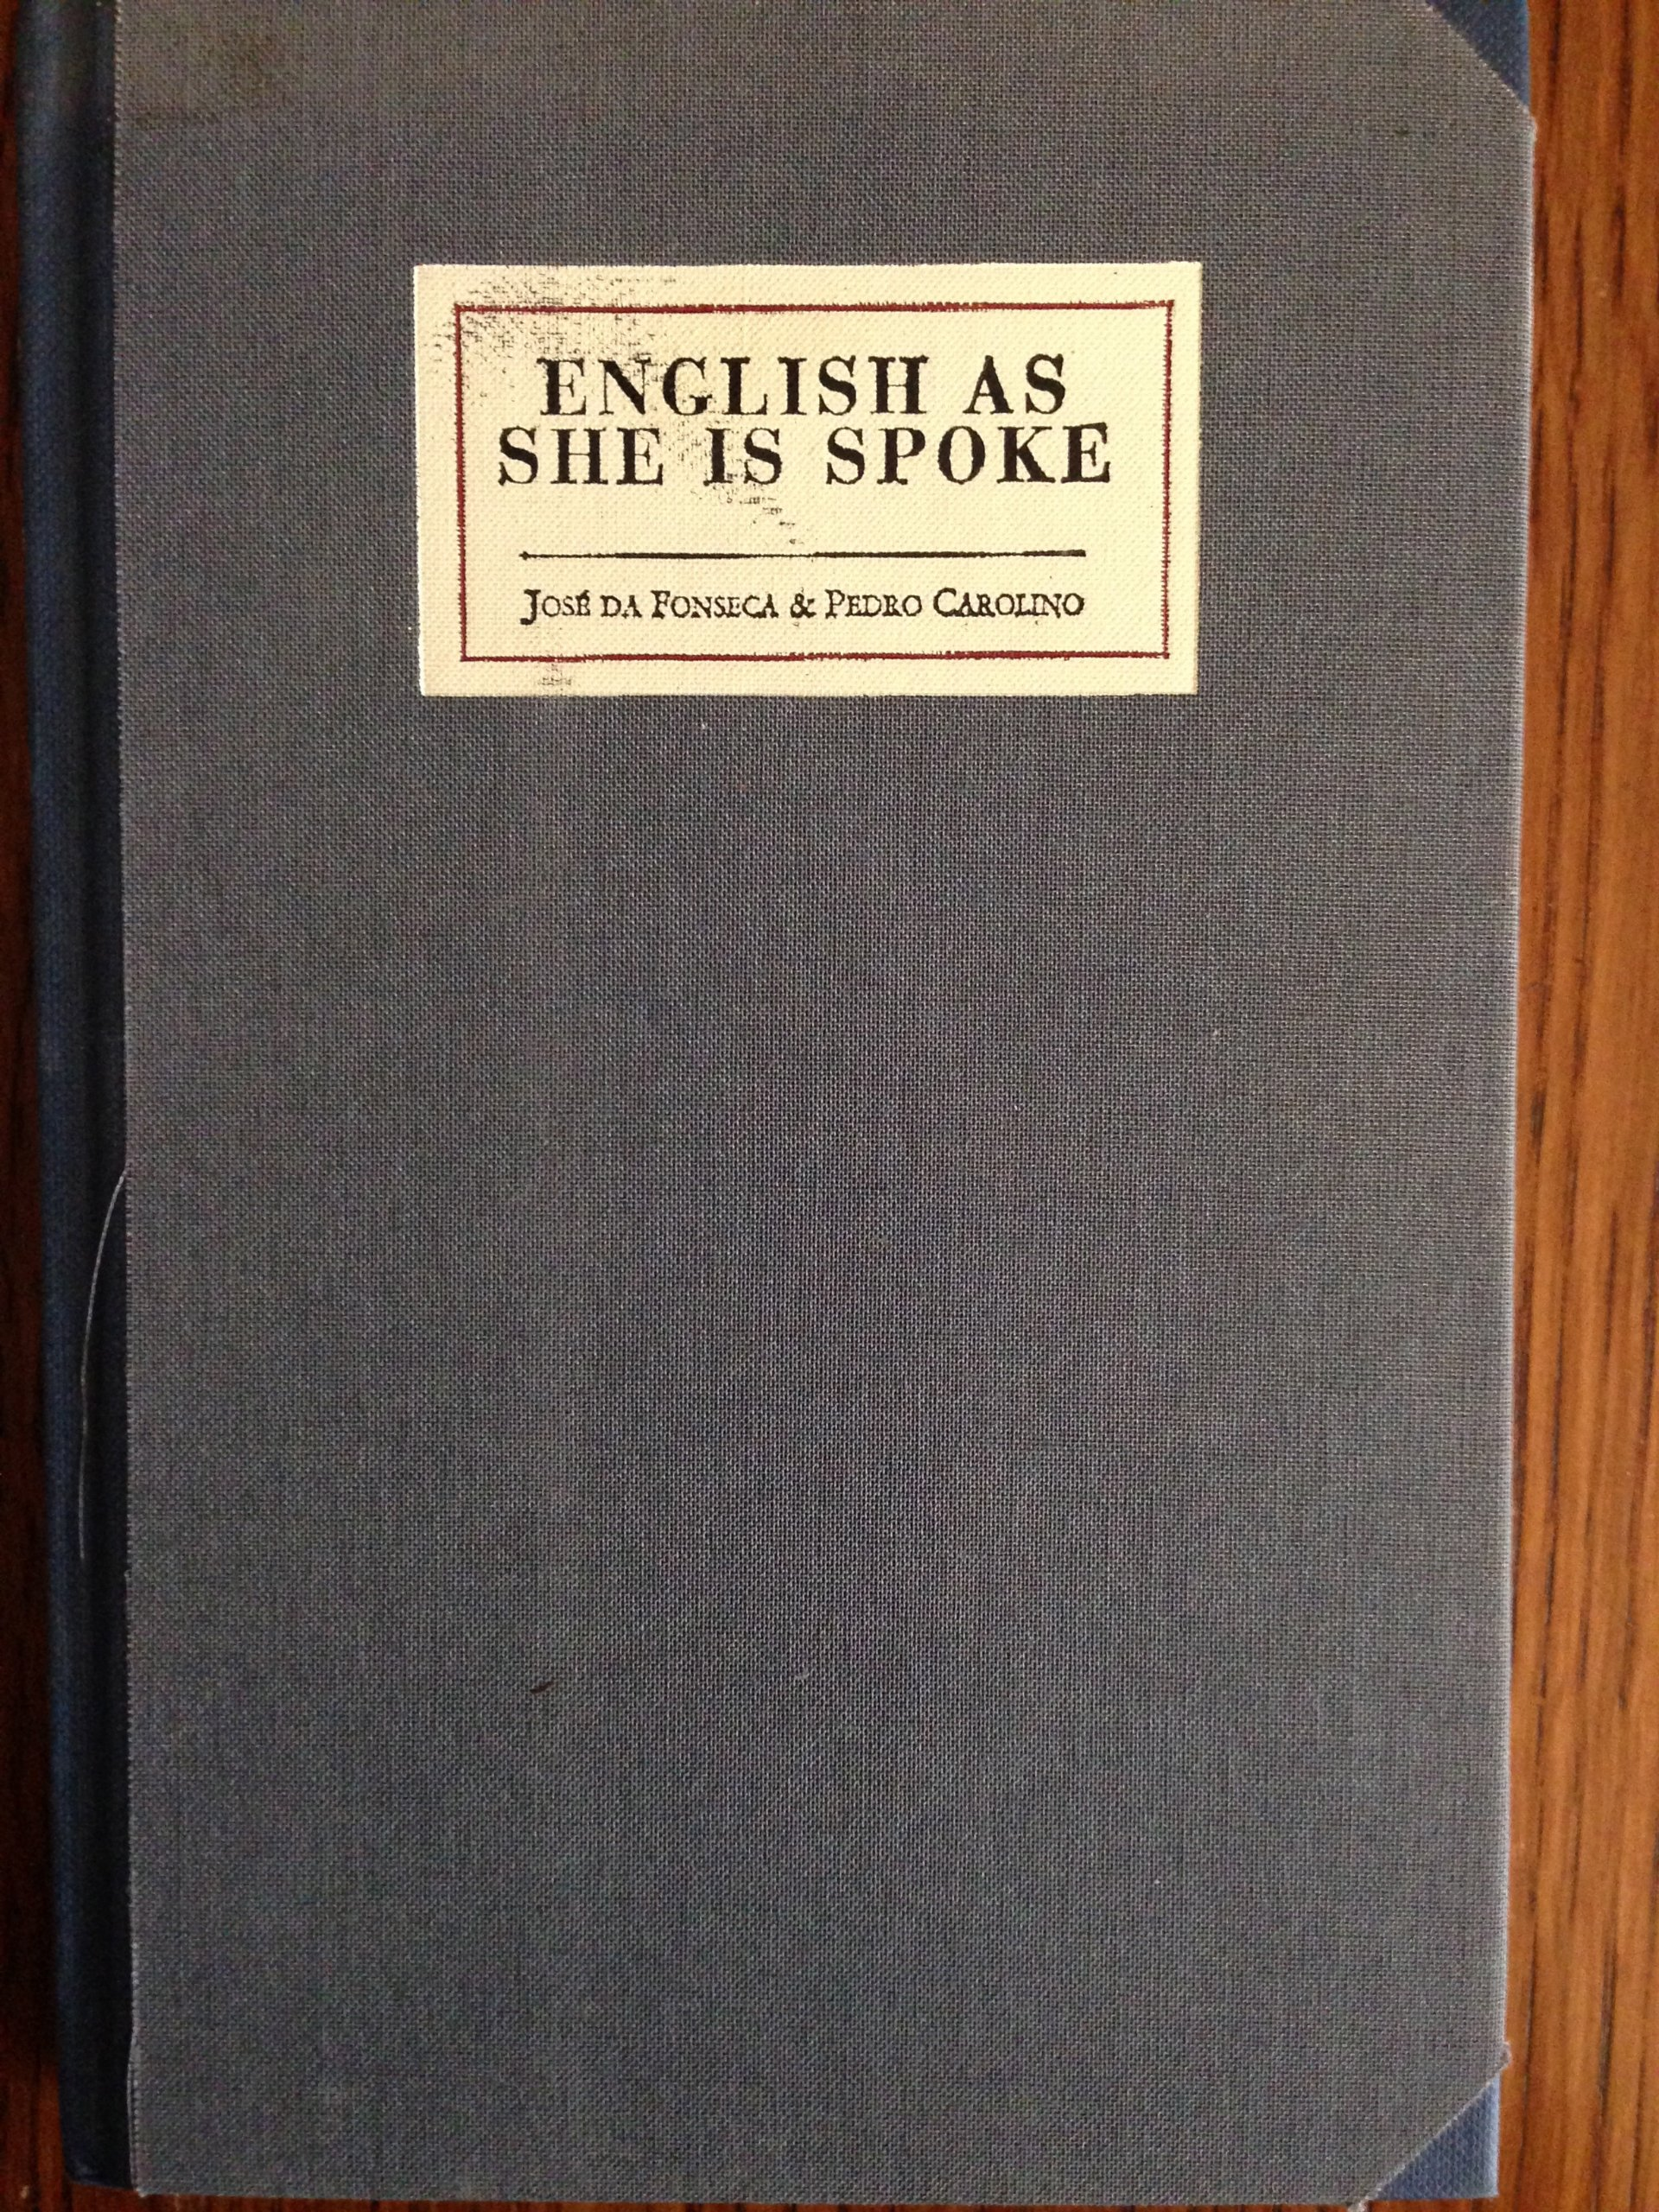 English As She Is Spoke: The New Guide of the Conversation in Portuguese and English, in Two Parts (English and Portuguese Edition) pdf